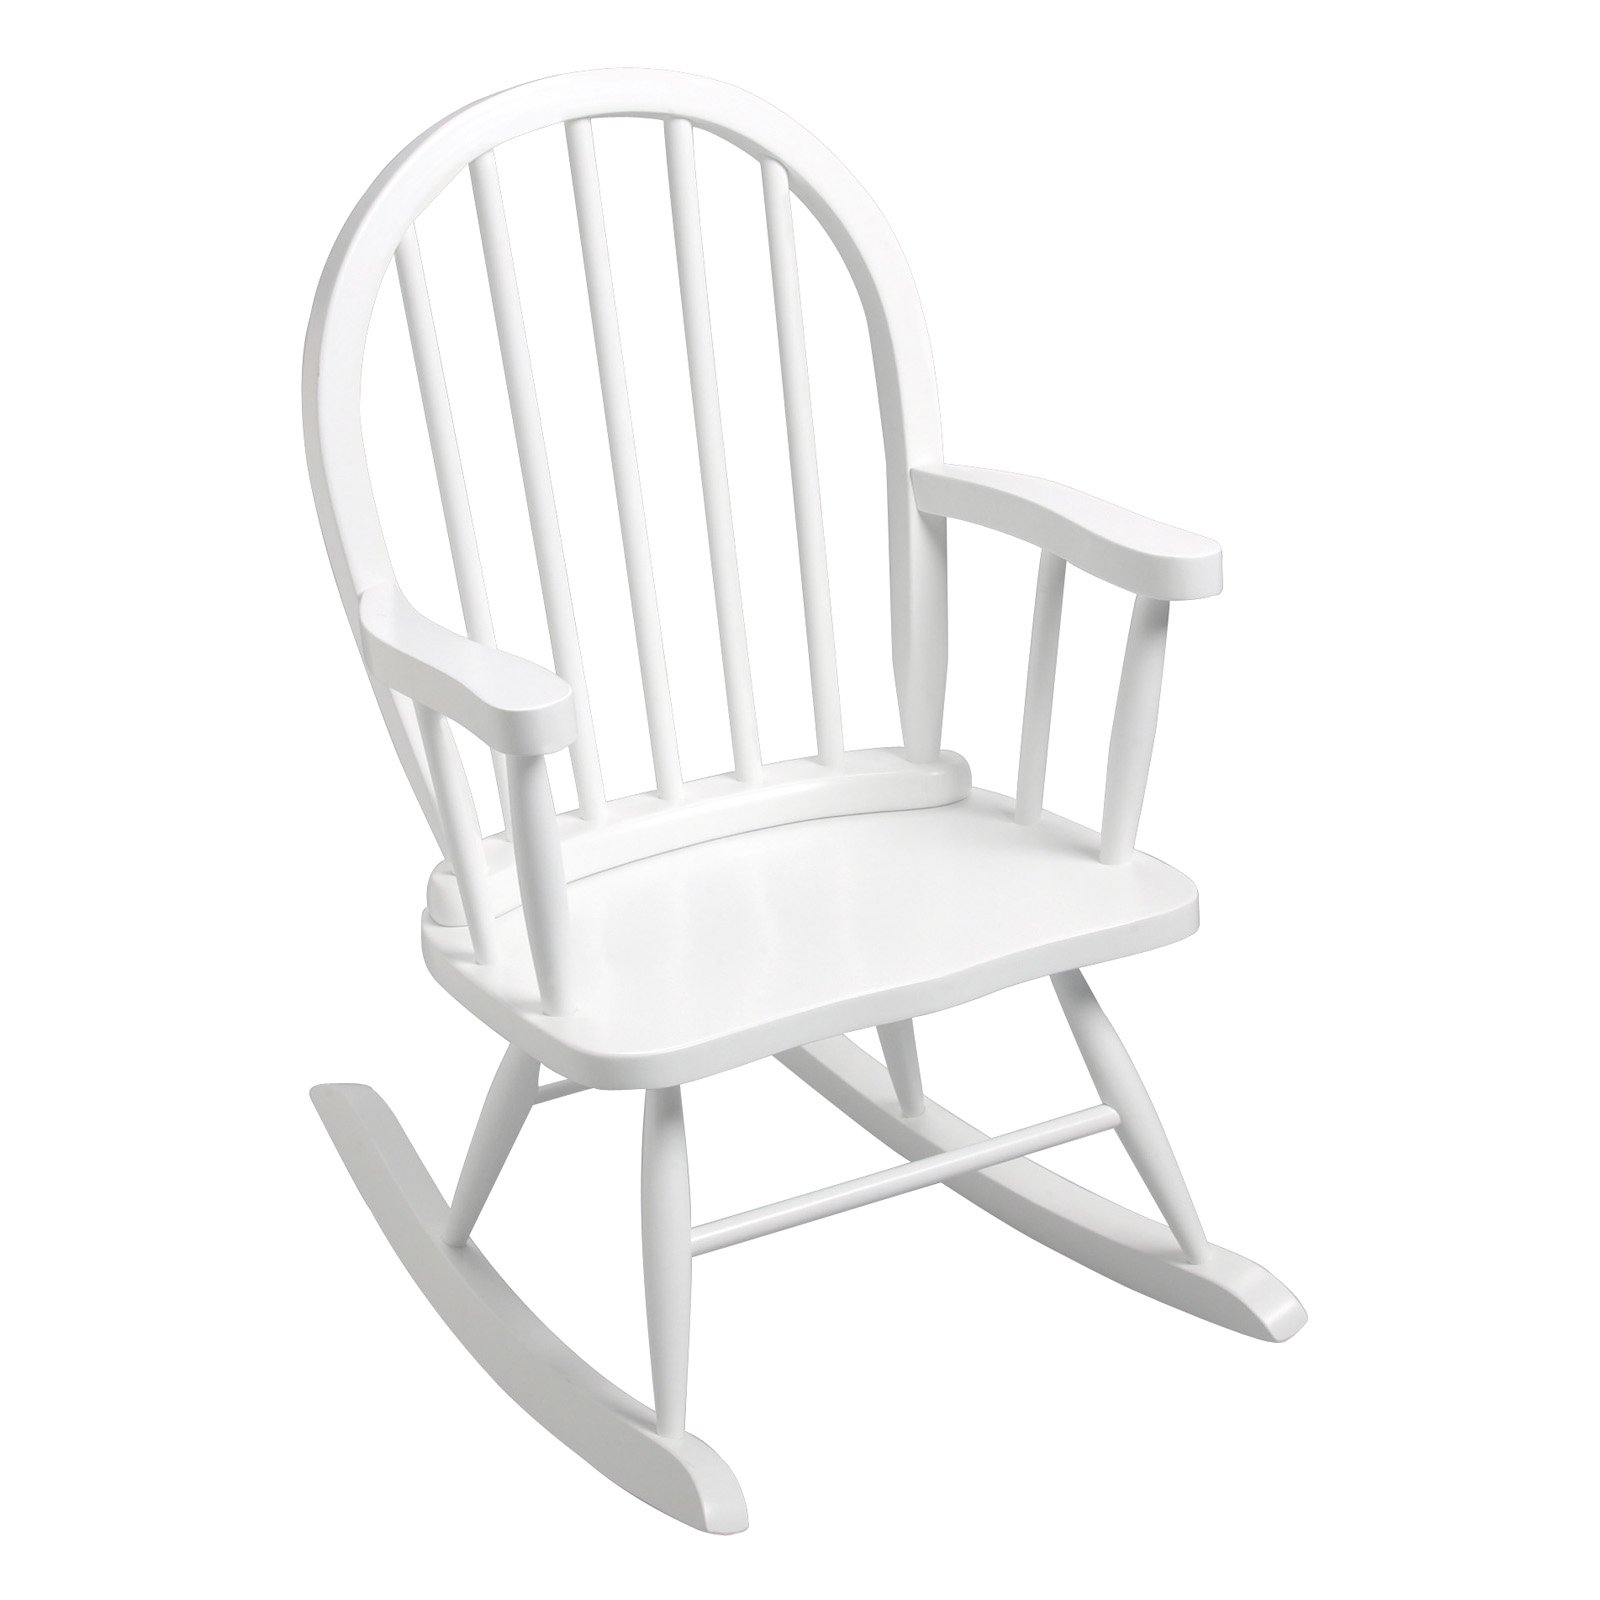 Gift Mark Windsor Childrens 3600 Rocking Chair White by Gift Mark